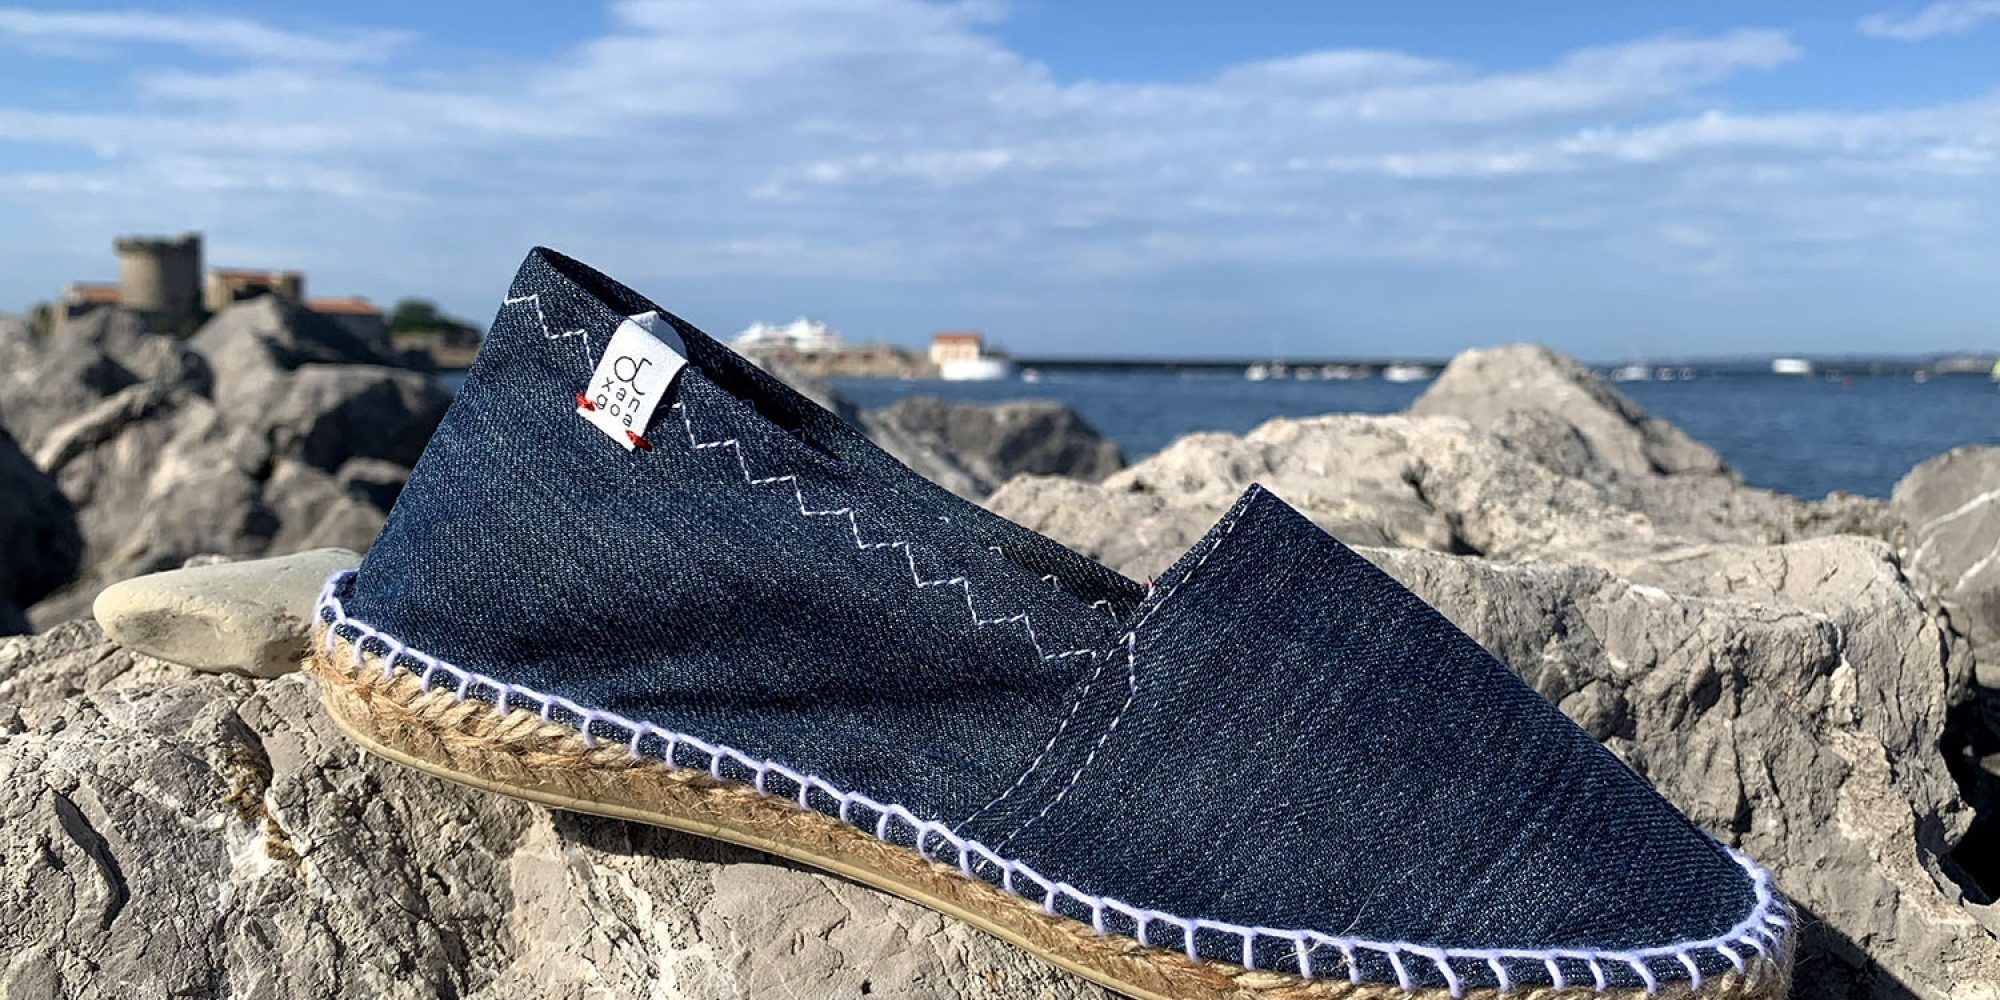 Our eco-designed and Made in France Otxangoa espadrilles. Here in medium Jean shade.